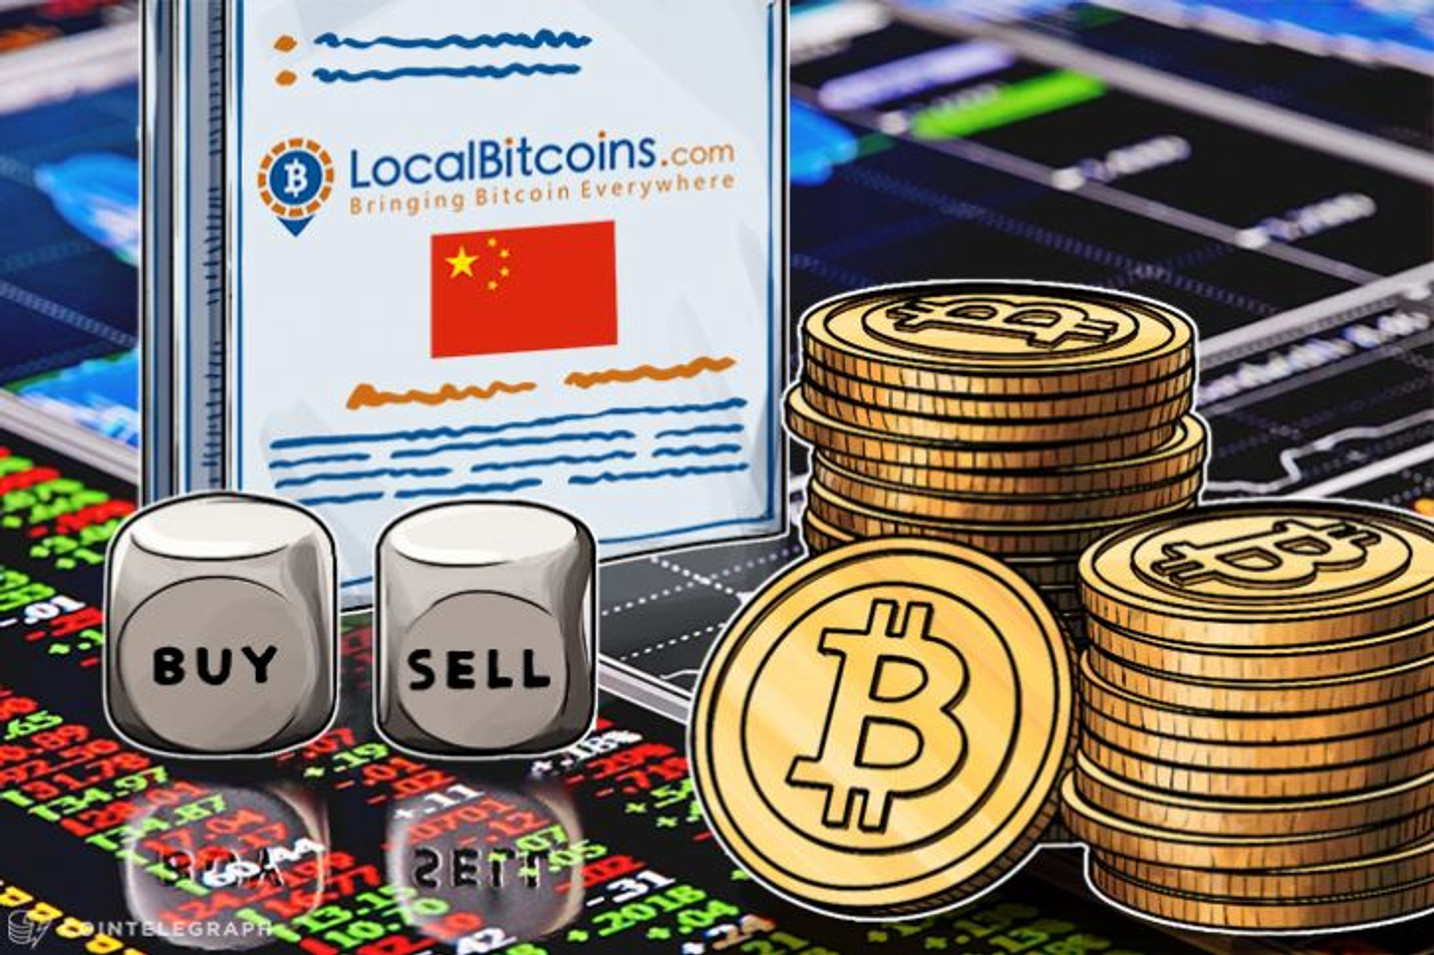 Bitcoin Exchange Woes See Almost $50 Mln Pass Through LocalBitcoins